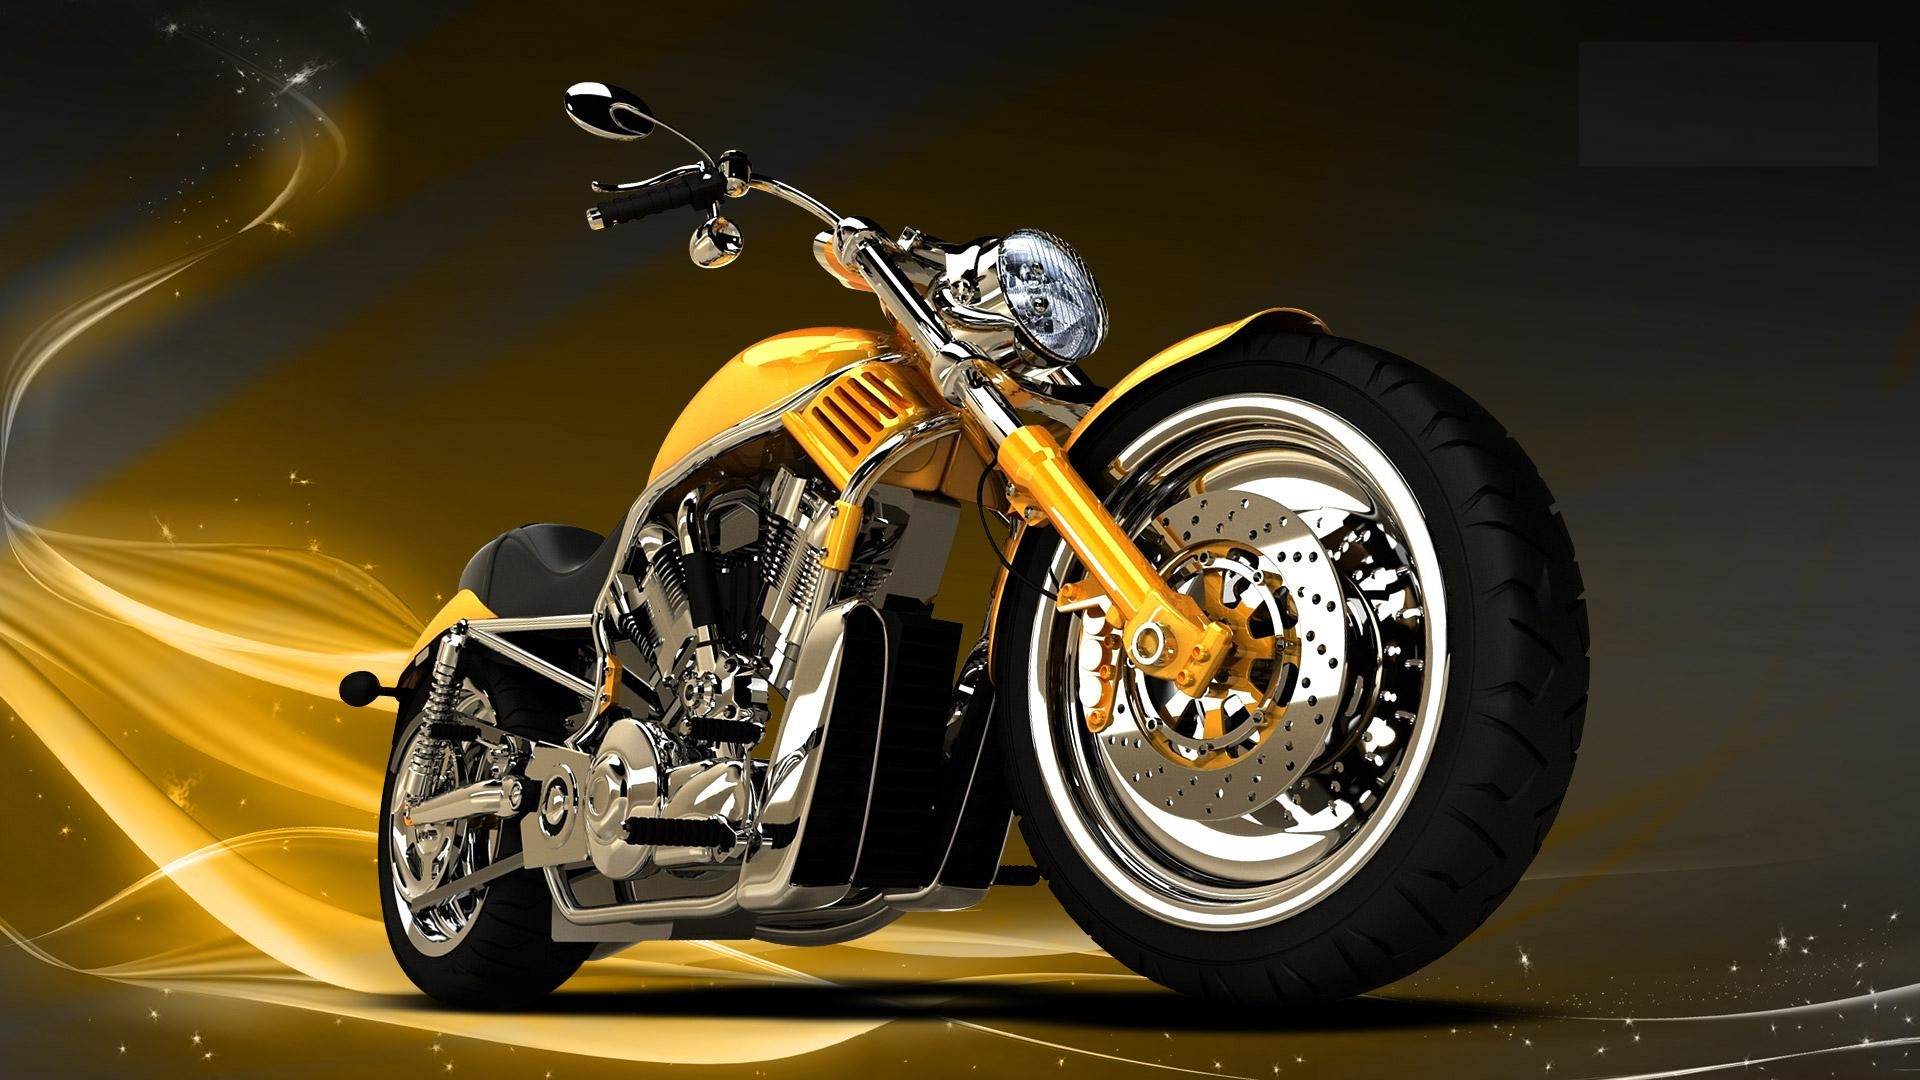 Yellow Bike 1920x1080 Hd Wallpapers 2013